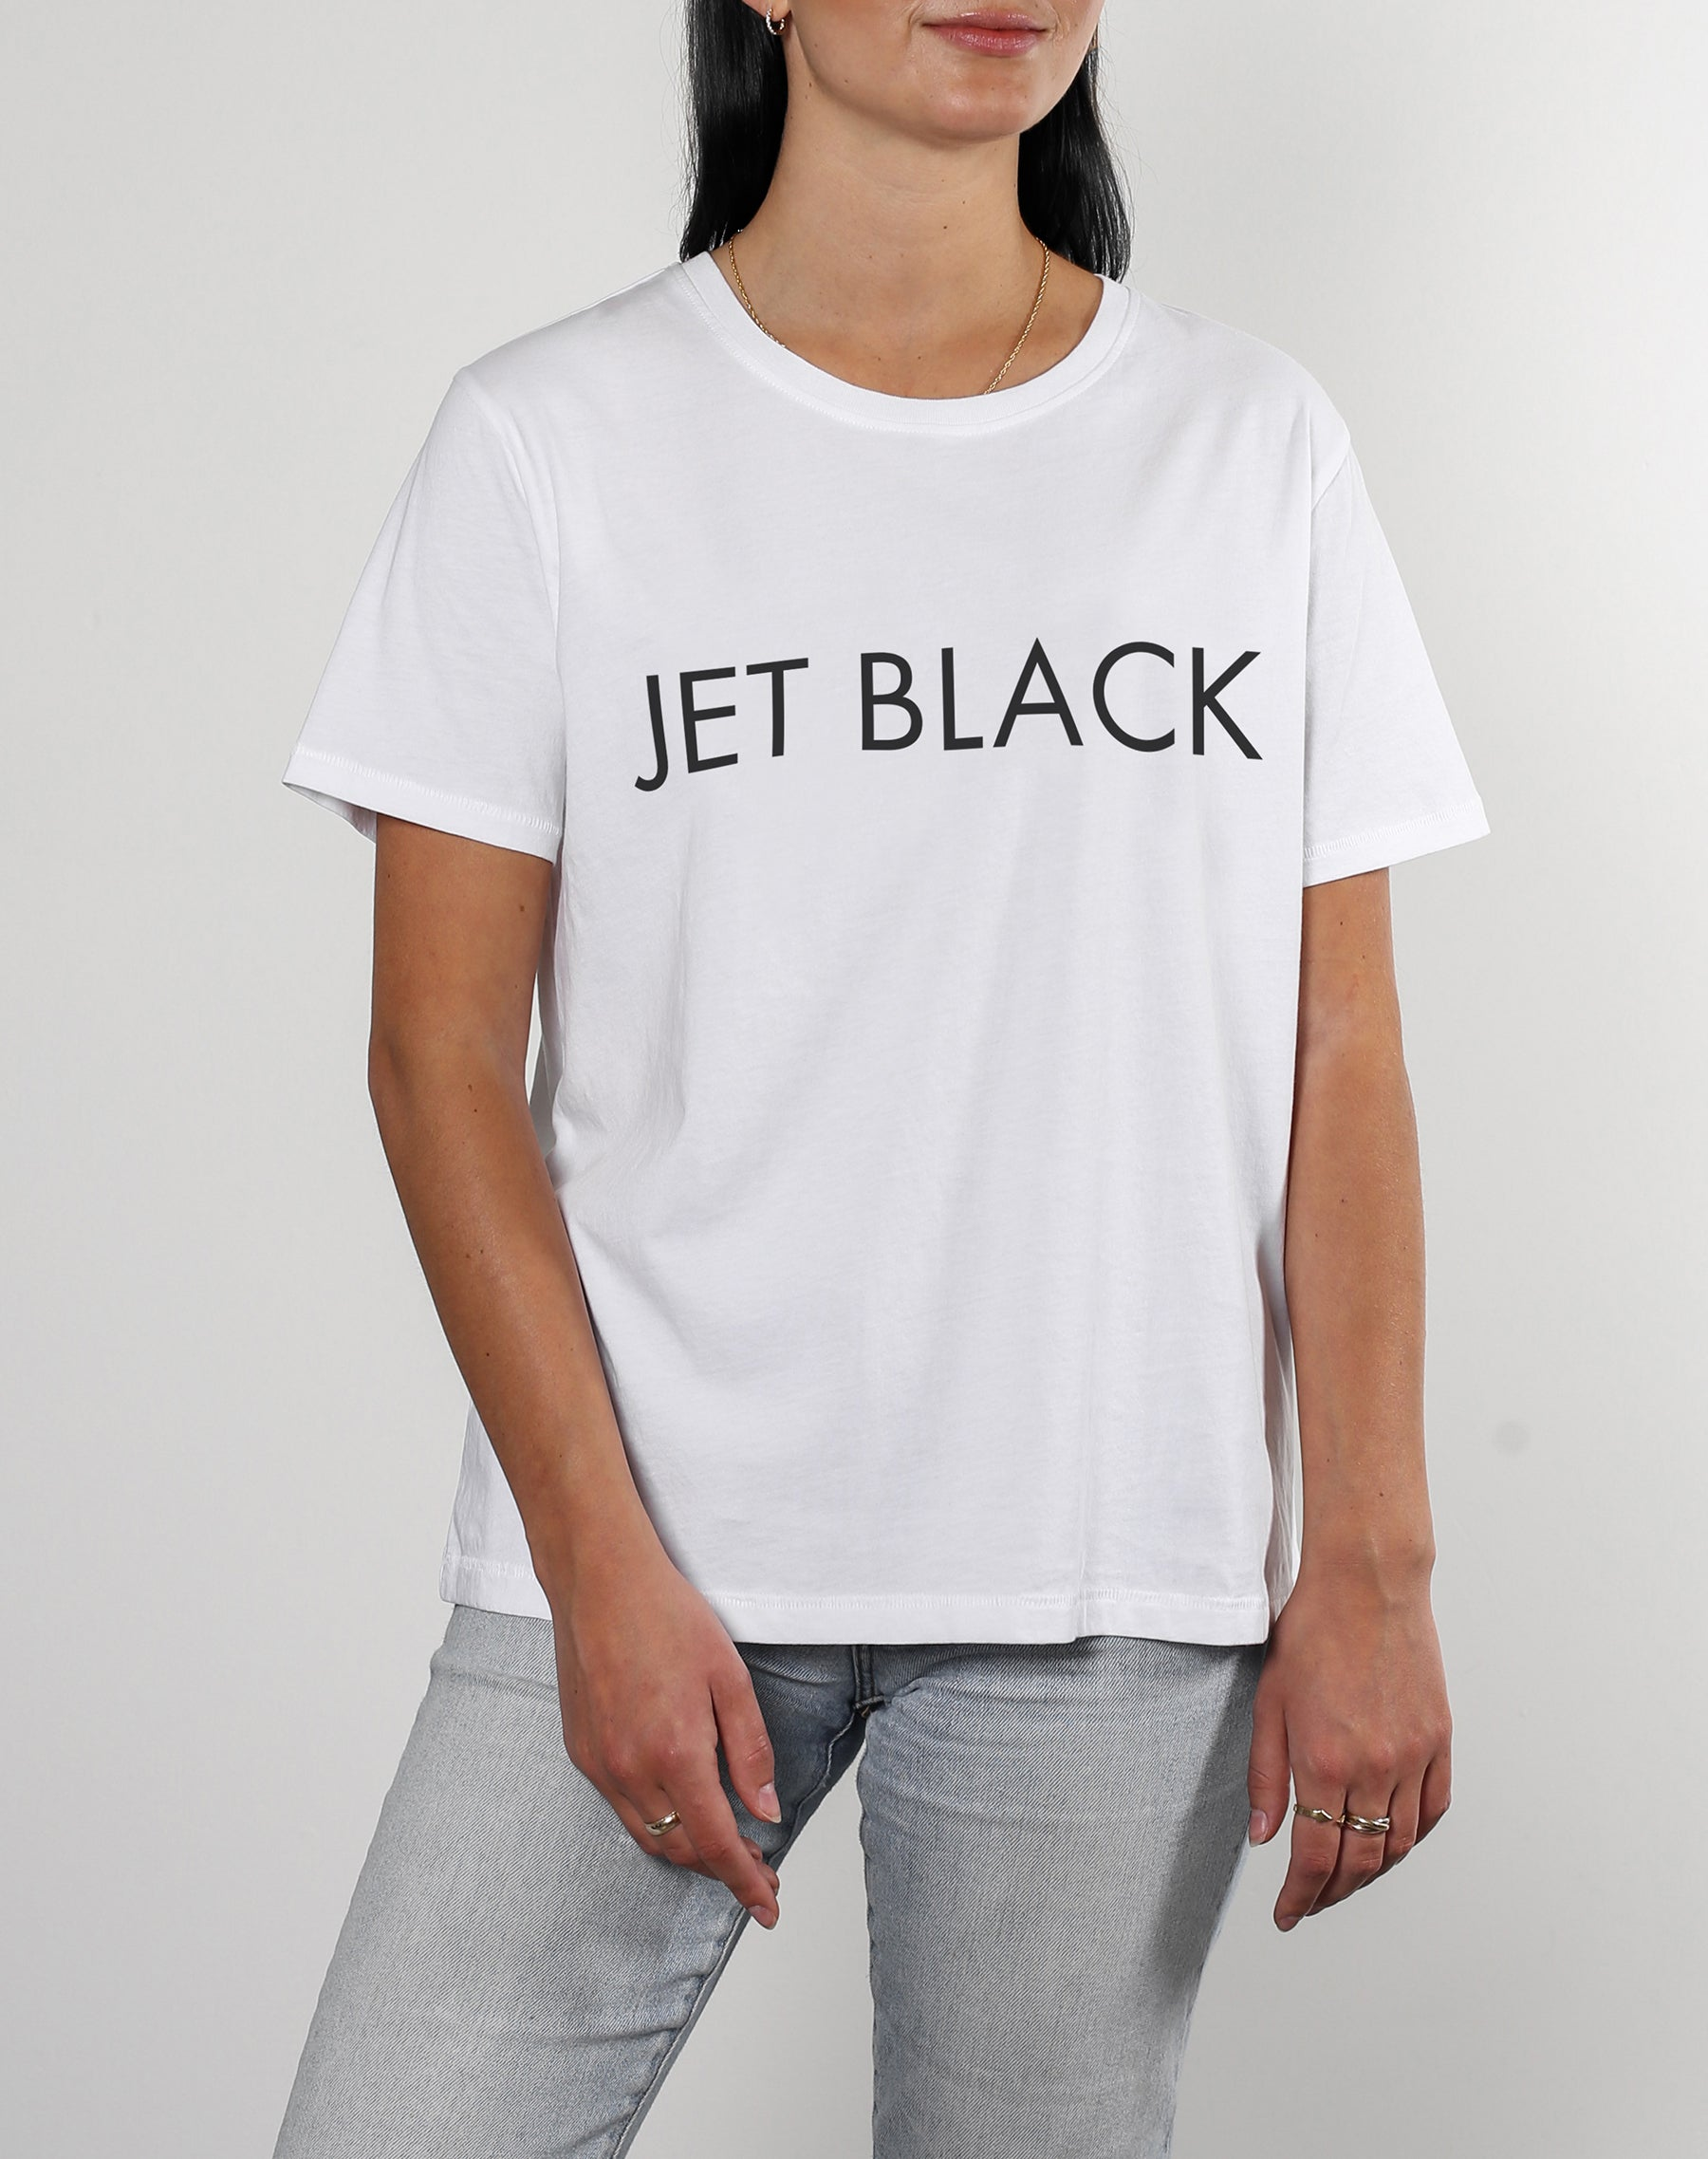 This is a photo of a model wearing Jet Black Classic Crew Neck Tee in White by Brunette The label.